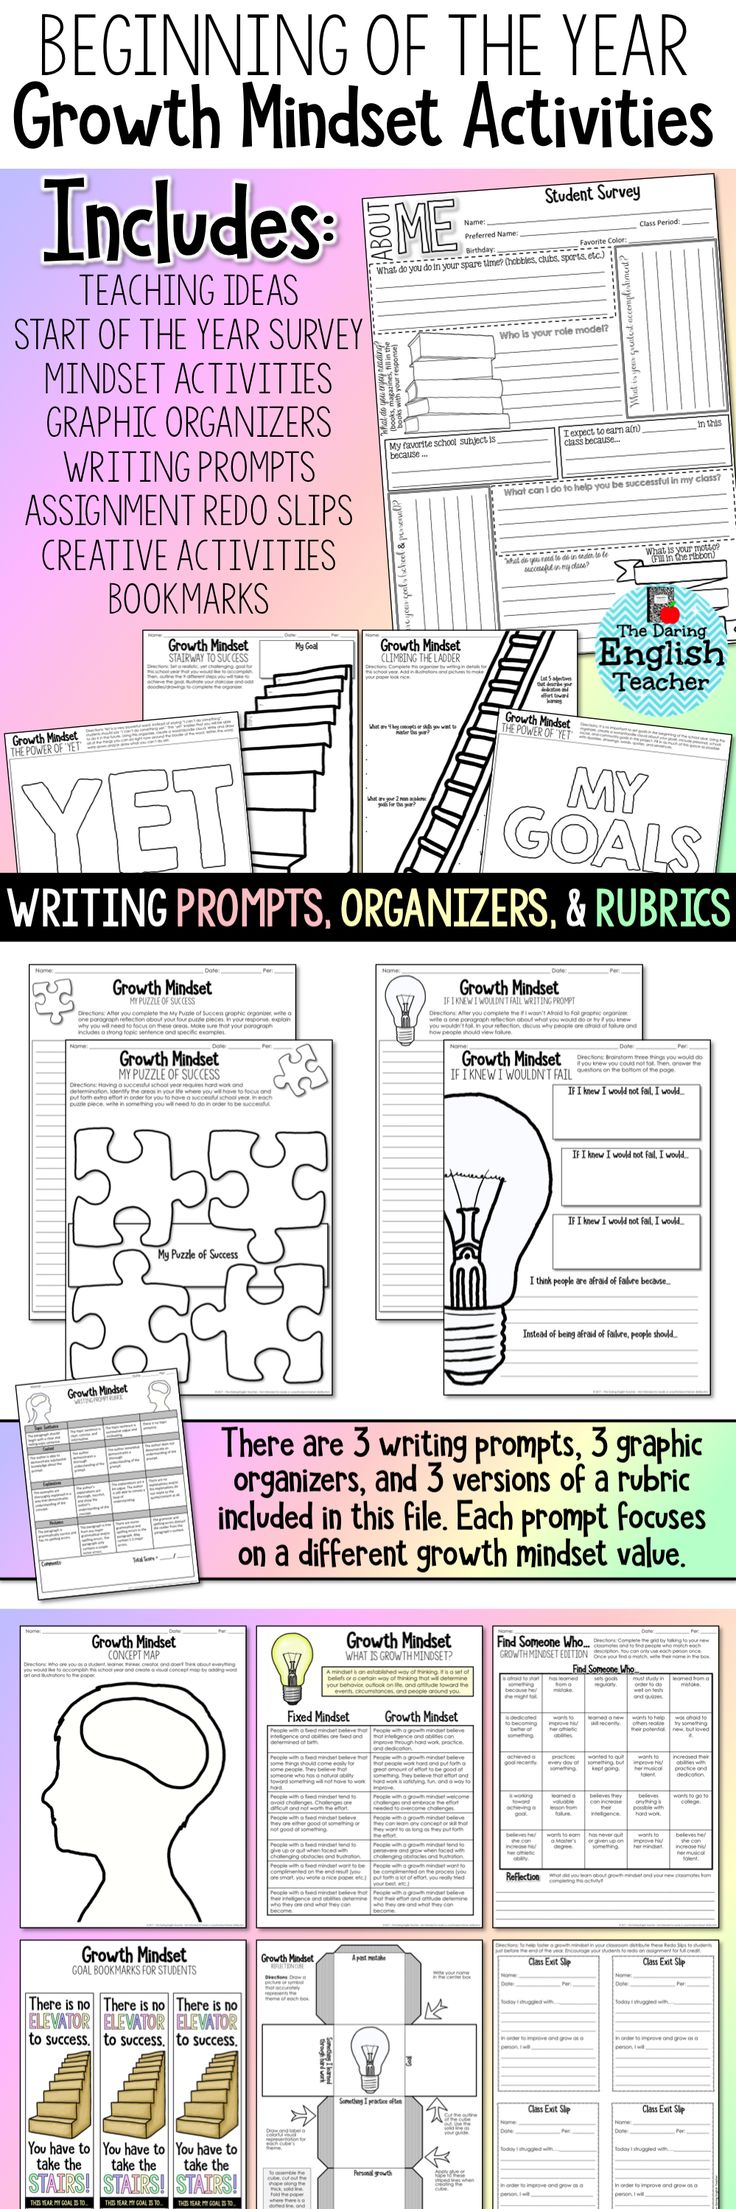 Third Person Worksheets Pdf Les  Meilleures Images Du Tableau Teaching Sur Pinterest  Esl Grammar Worksheet Pdf with Writing Formulas From Names Worksheet Pdf Back To School Growth Mindset Activities These And Those Worksheets